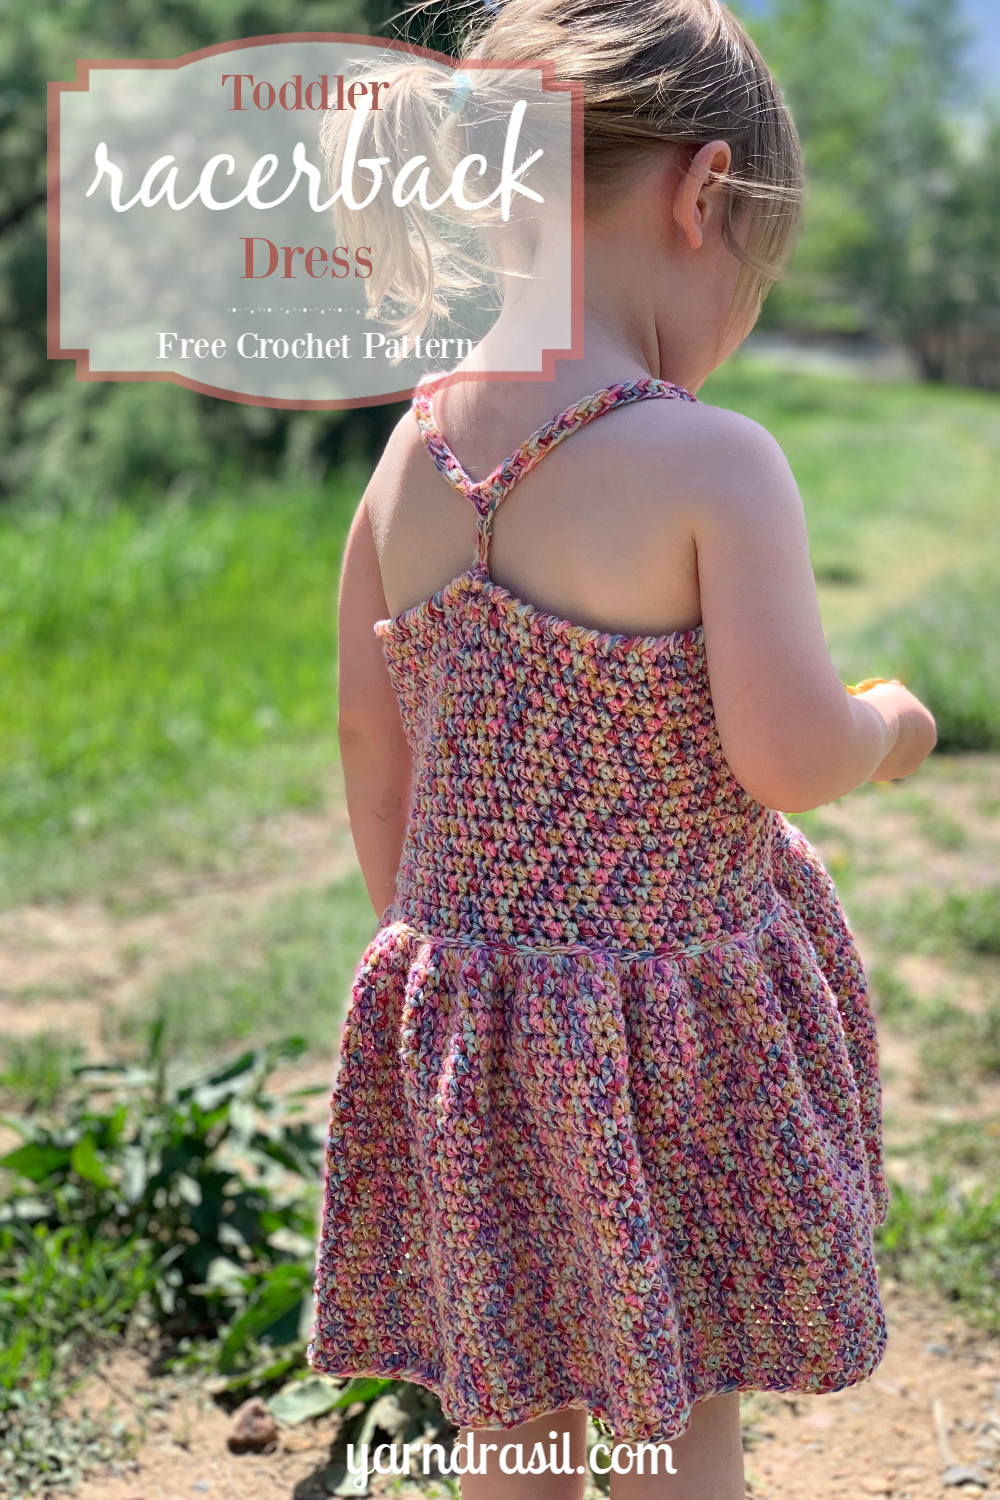 Toddler Racerback Dress | Free Crochet Dress